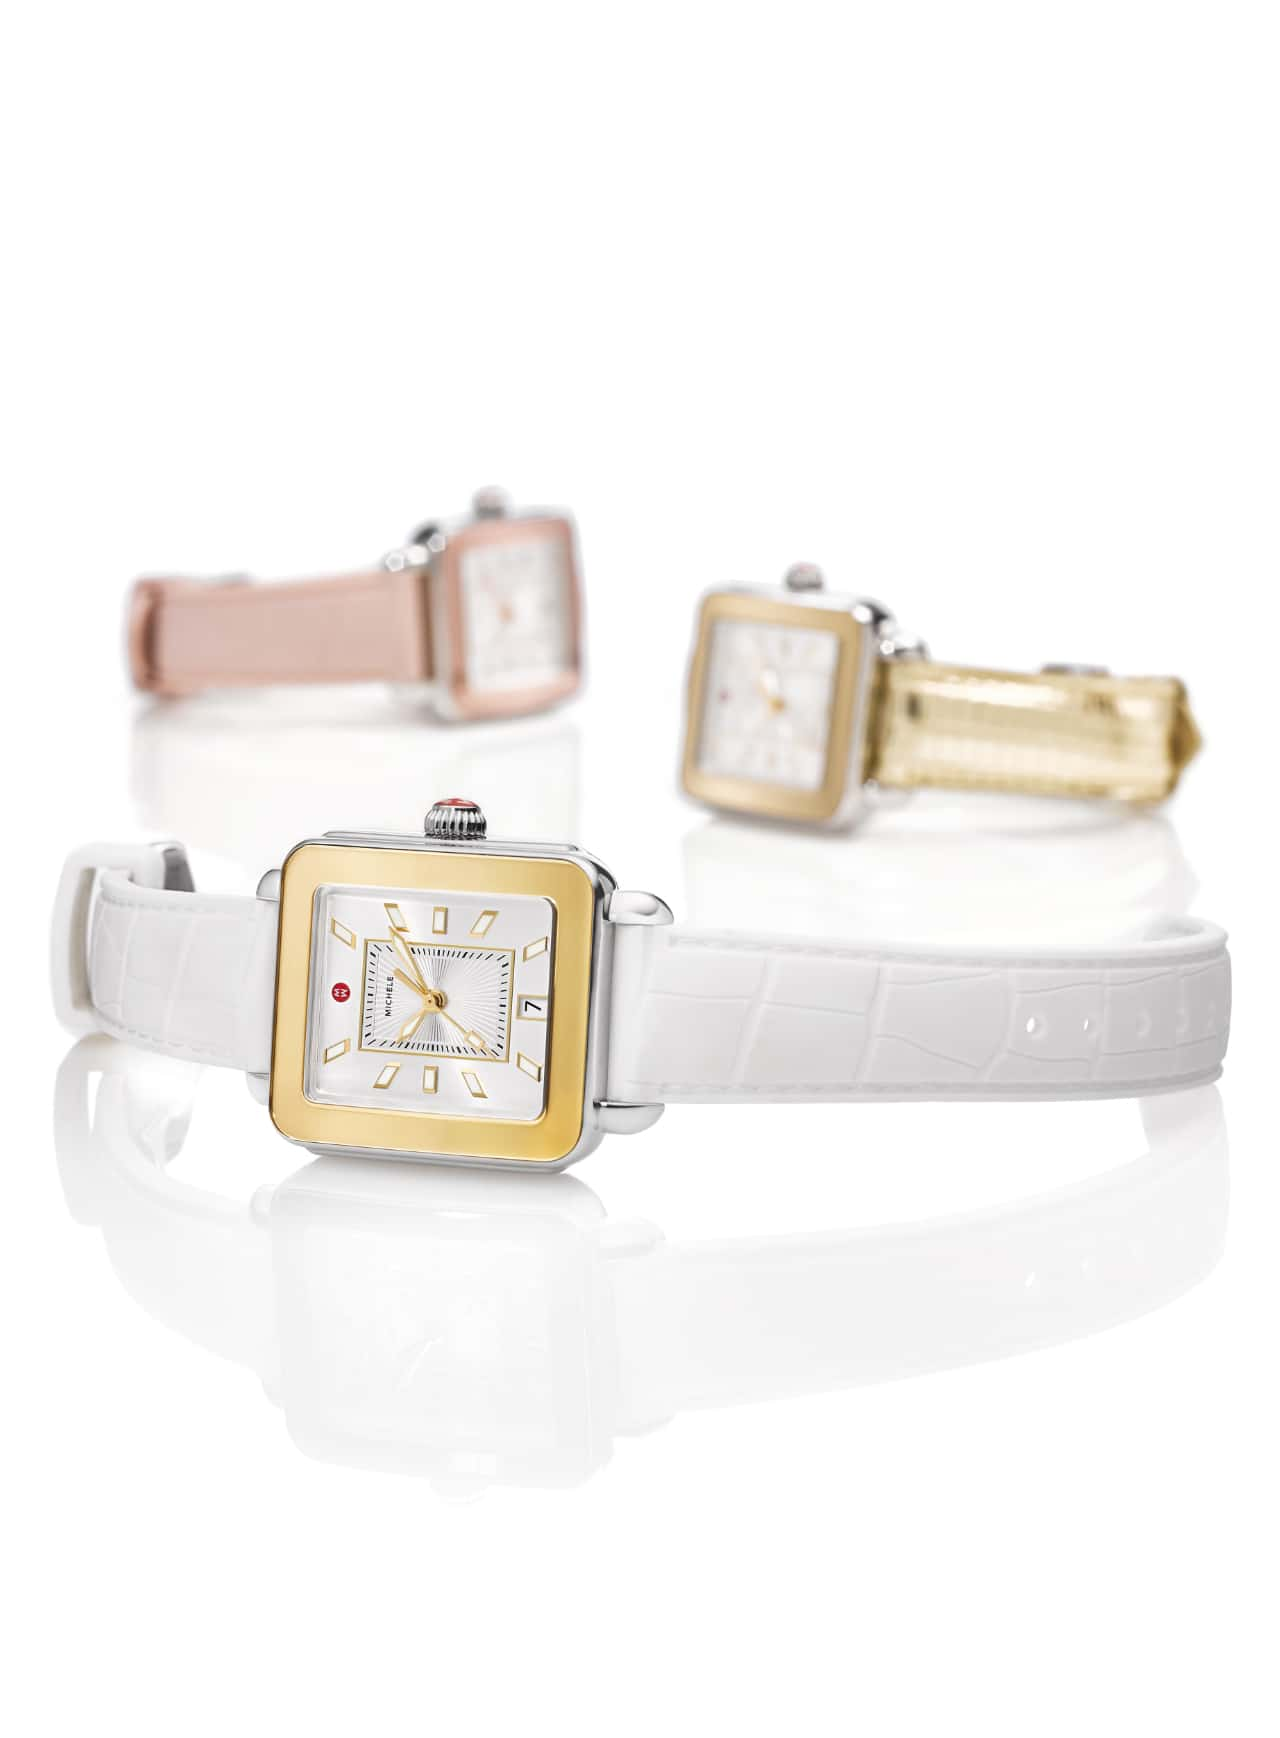 Three Deco Sport watches in white, pink and gold-tone straps.